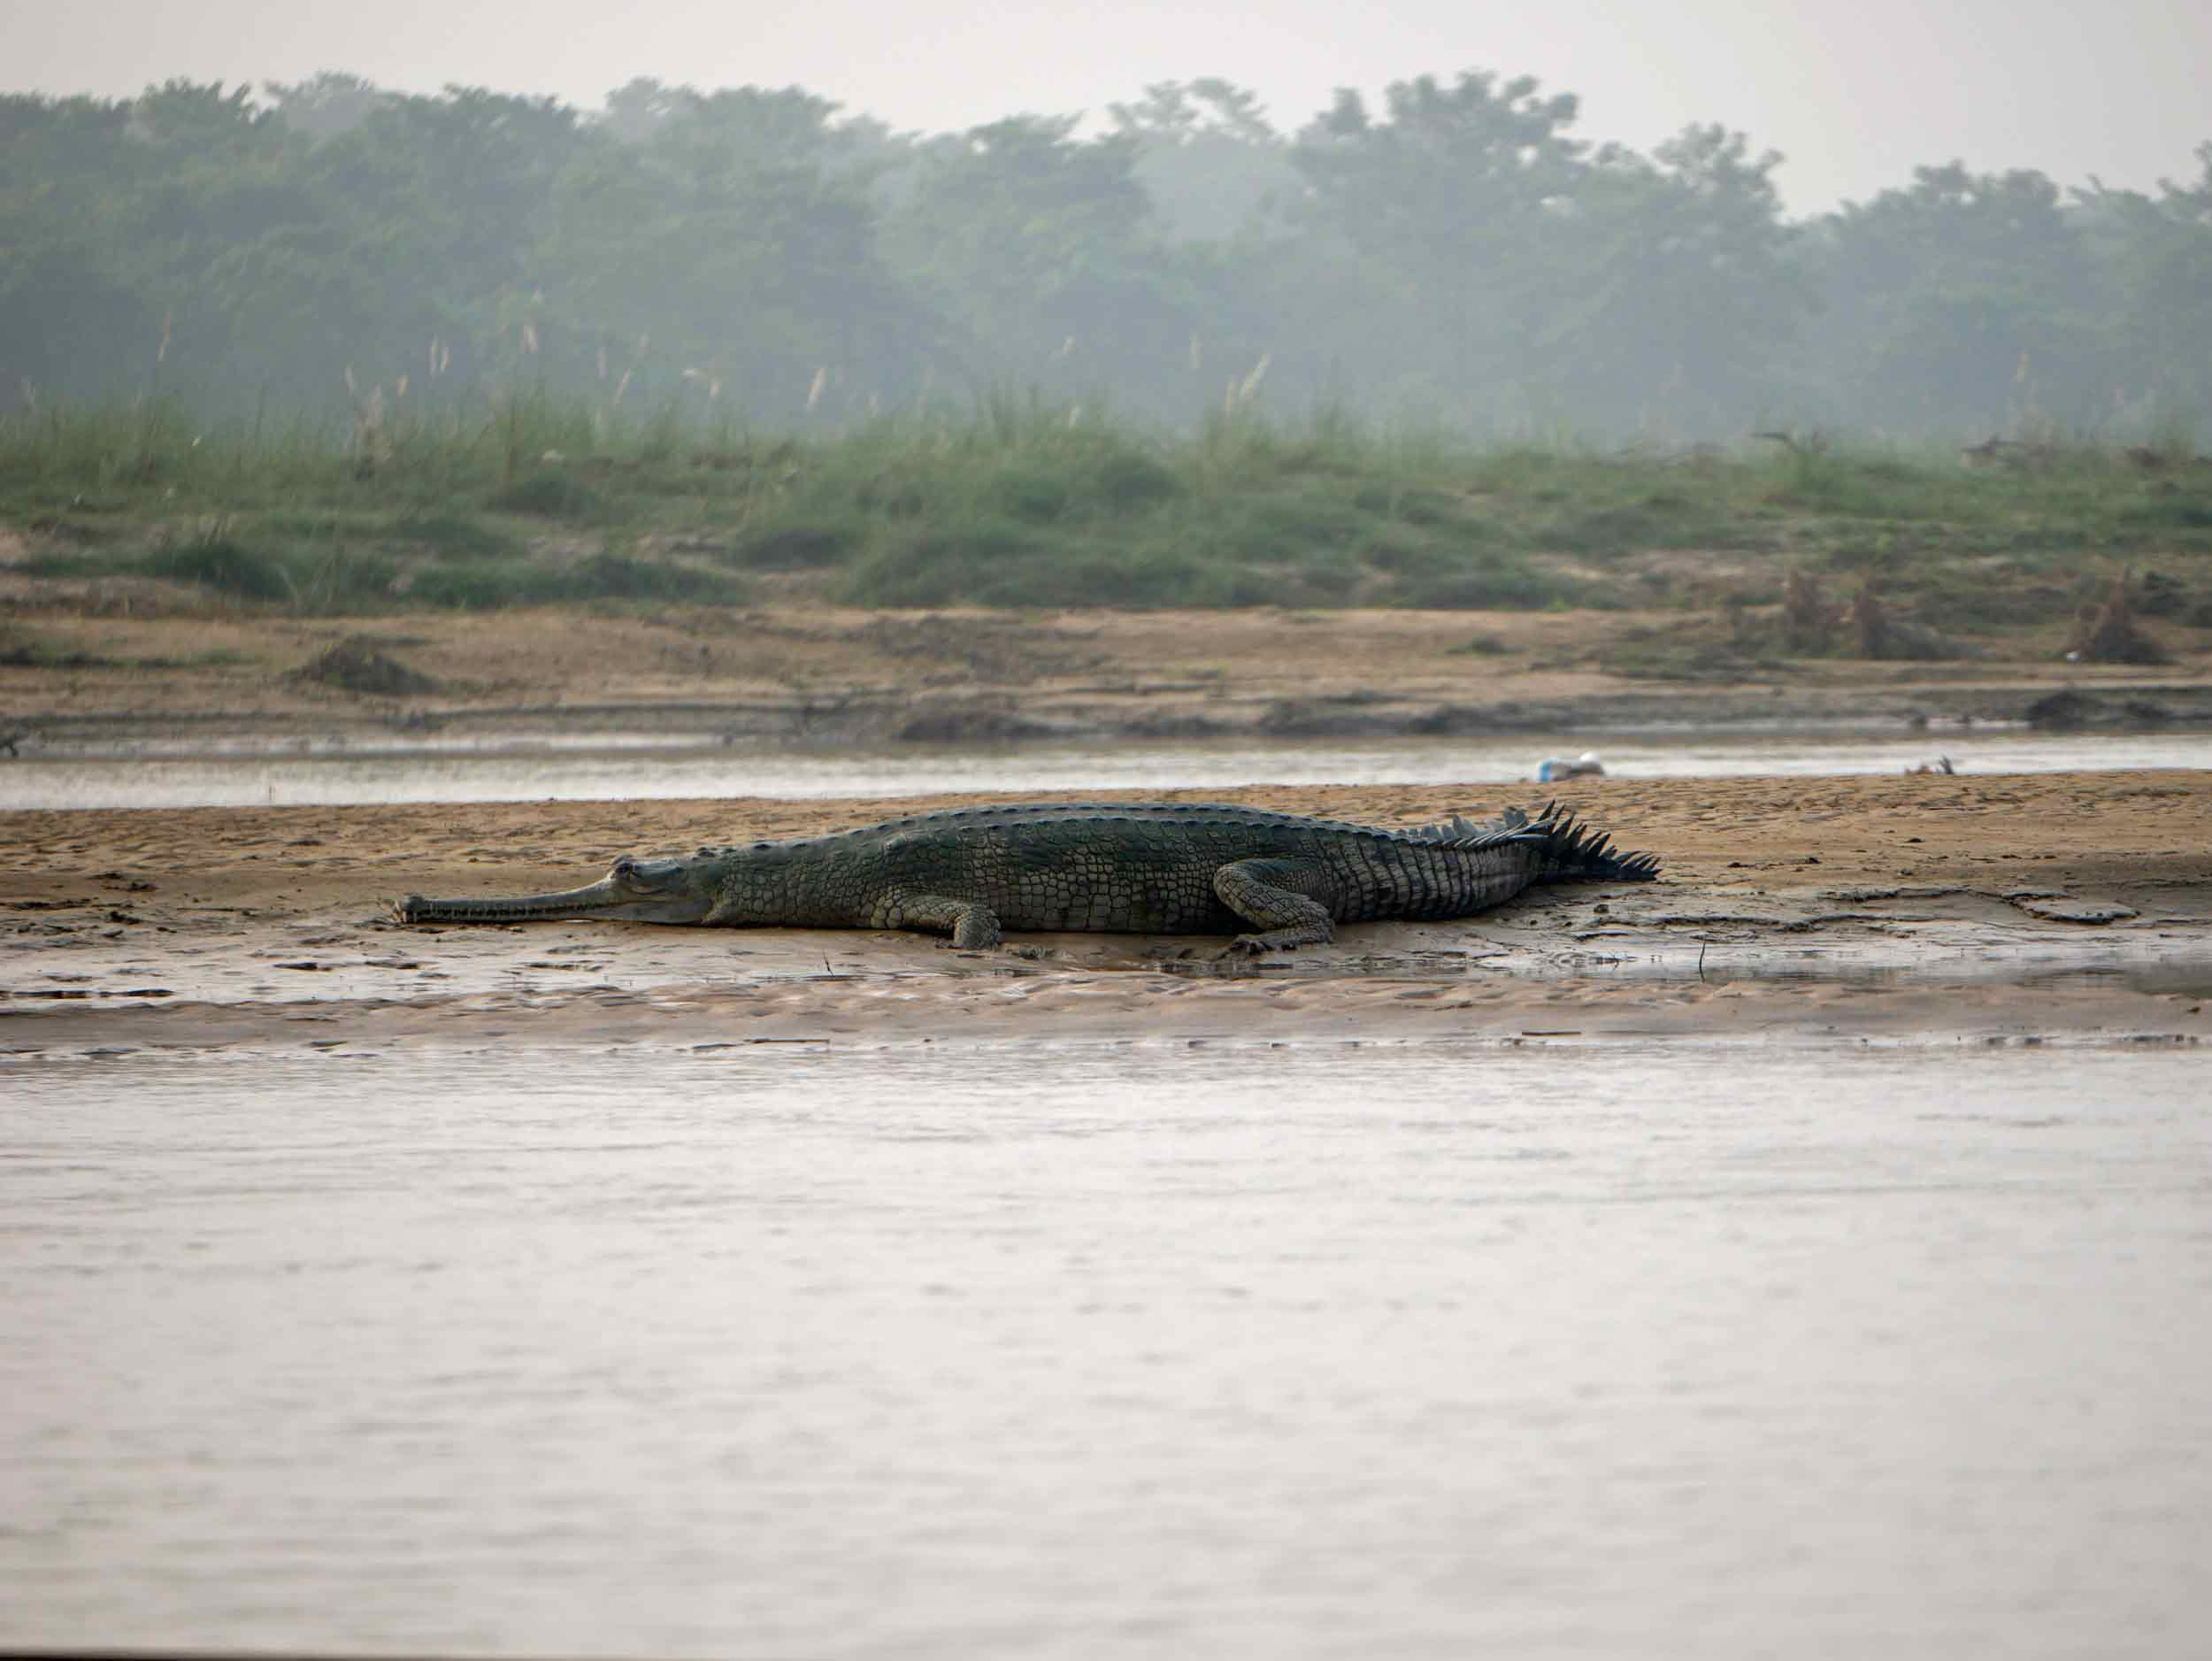 We were lucky to see both species of rare crocodiles - the Marsh Mugger and the Gharial -while in Chitwan.